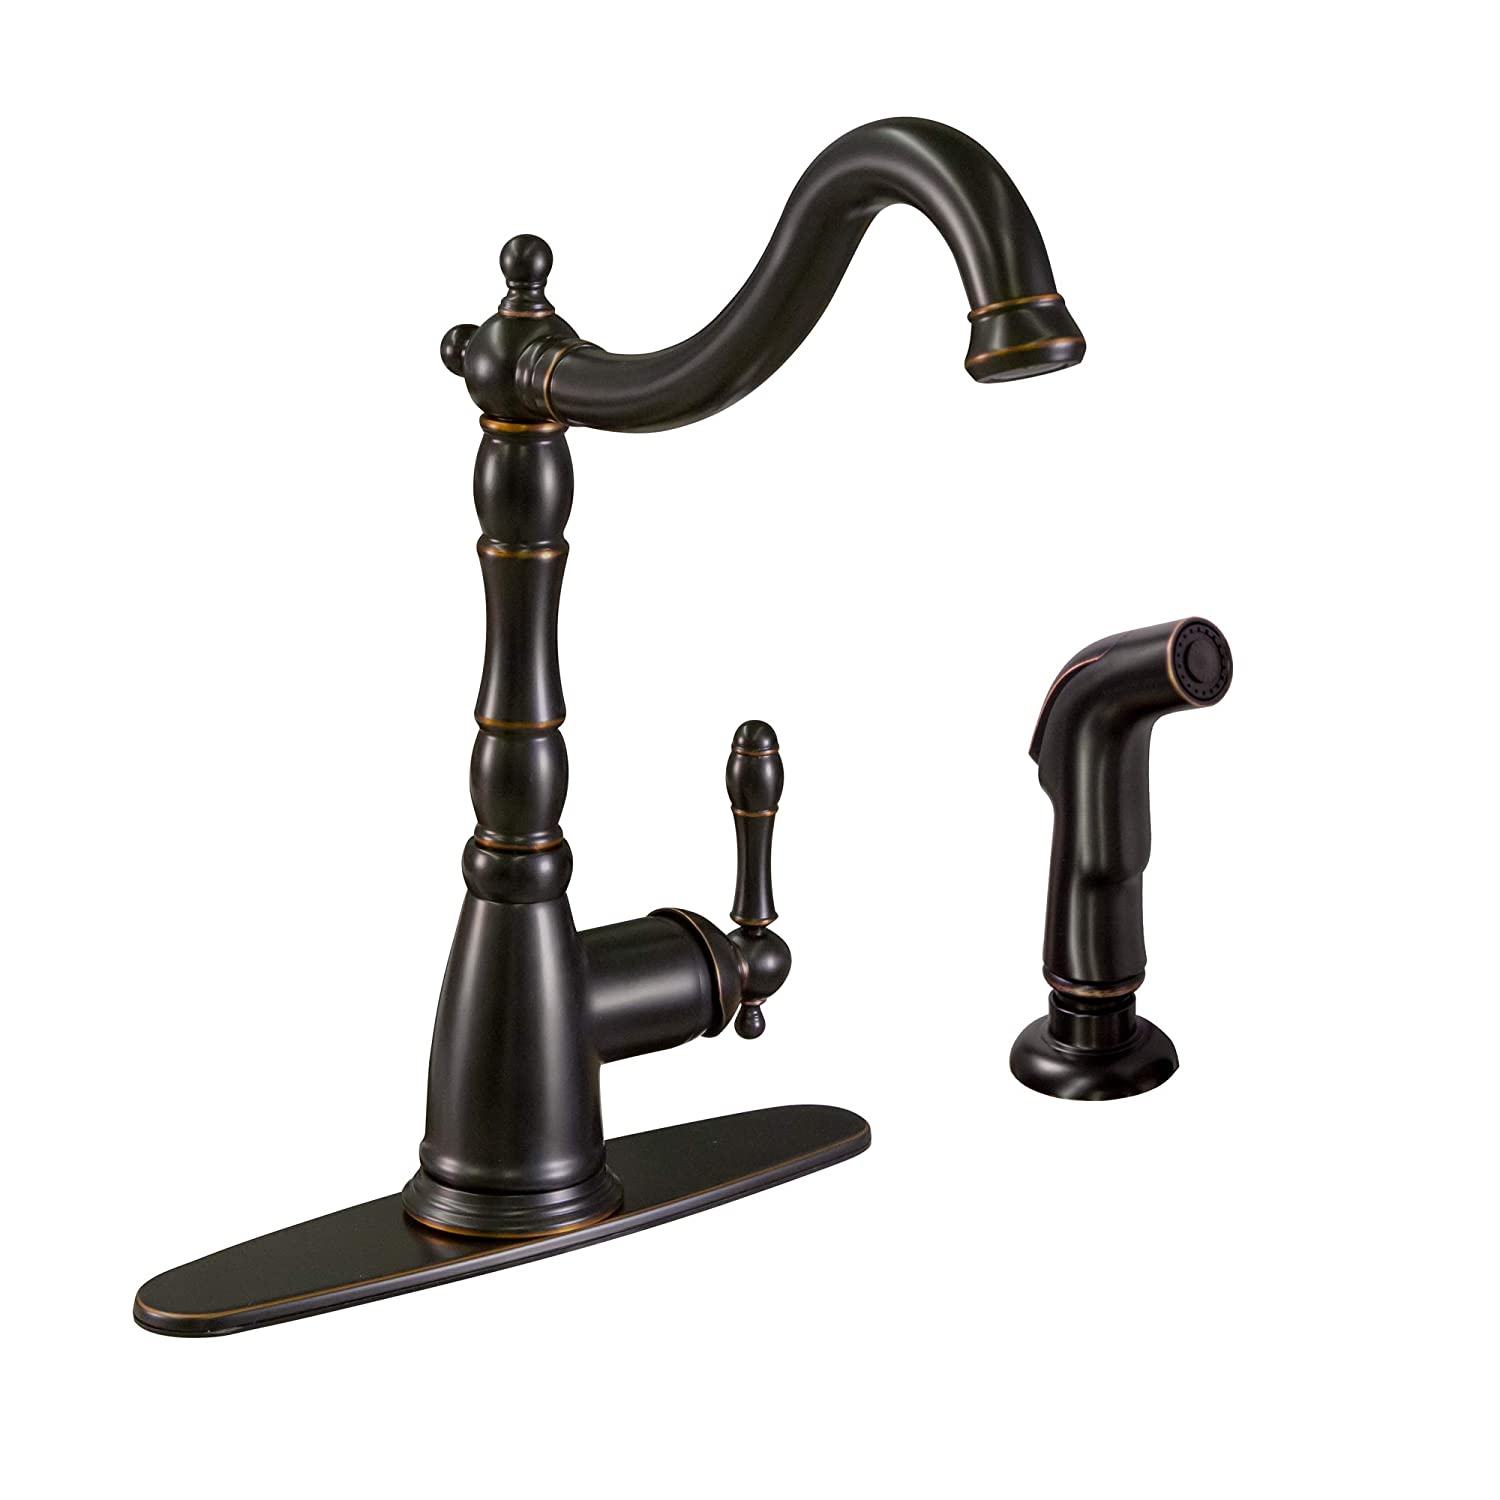 Design House 523217 Oakmont Kitchen Faucet with Sprayer with Single Handle, Oil Rubbed Bronze Finish